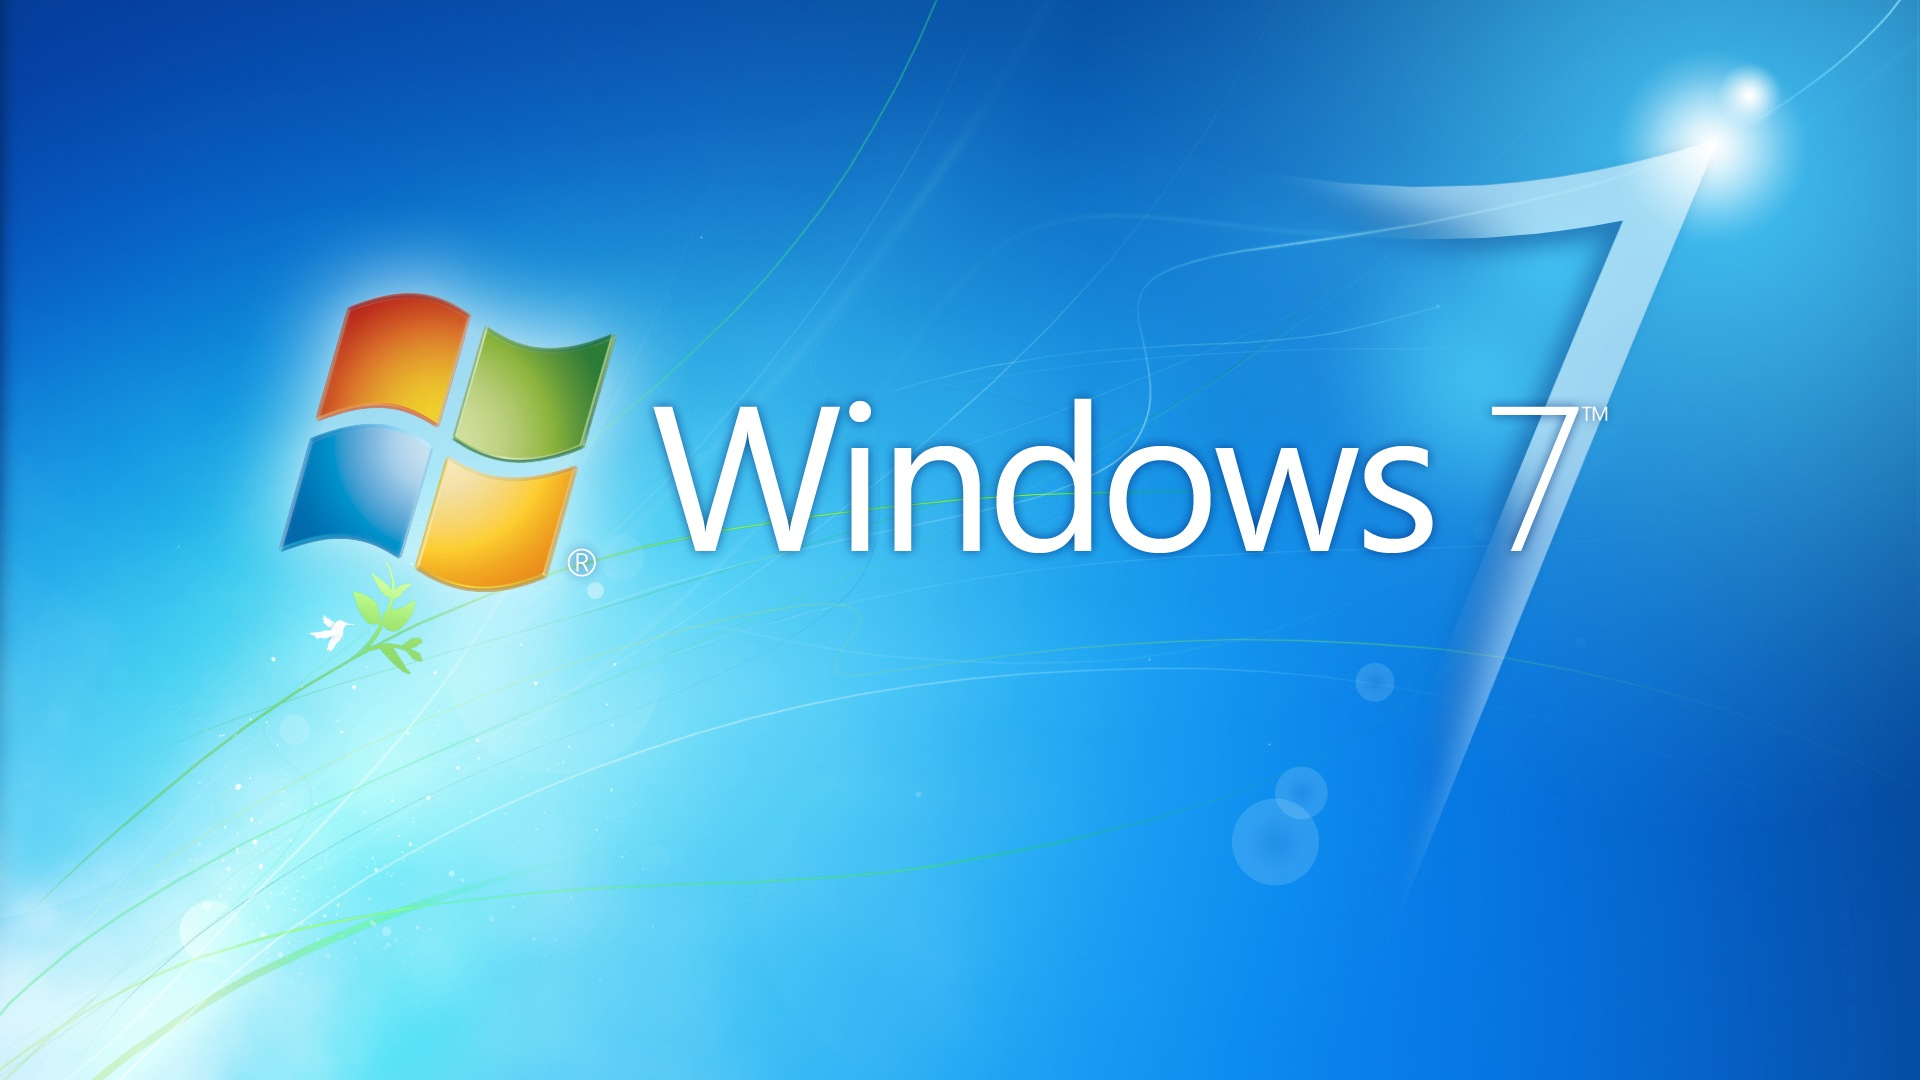 Windows 7 All In Crack One ISO Download Overview 2021